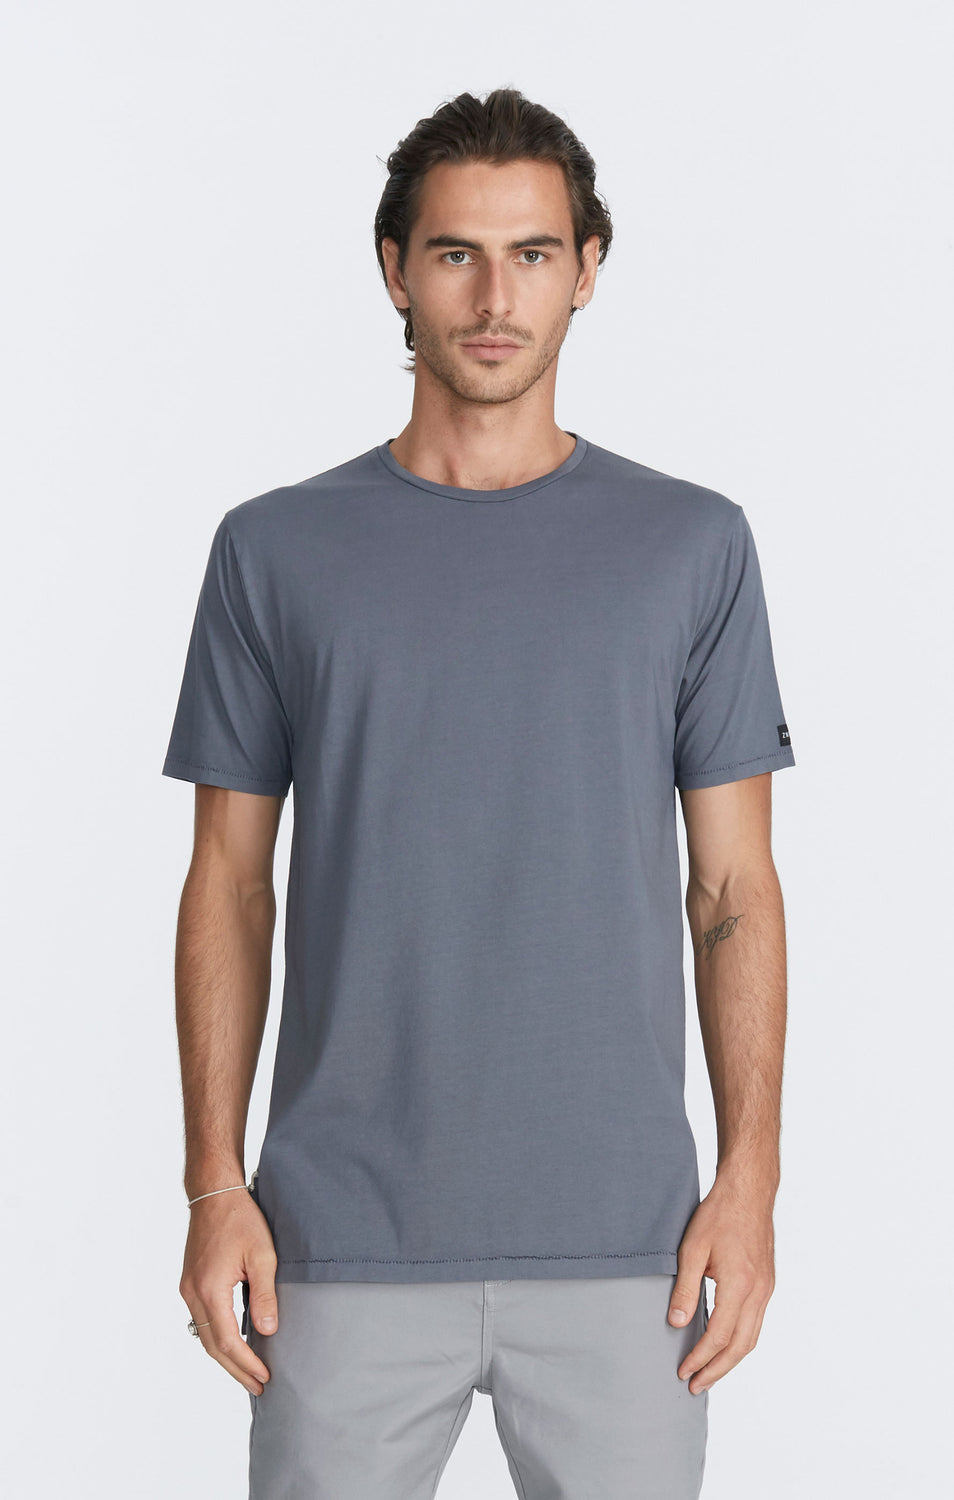 Flintlock Tee // Pigment Grey